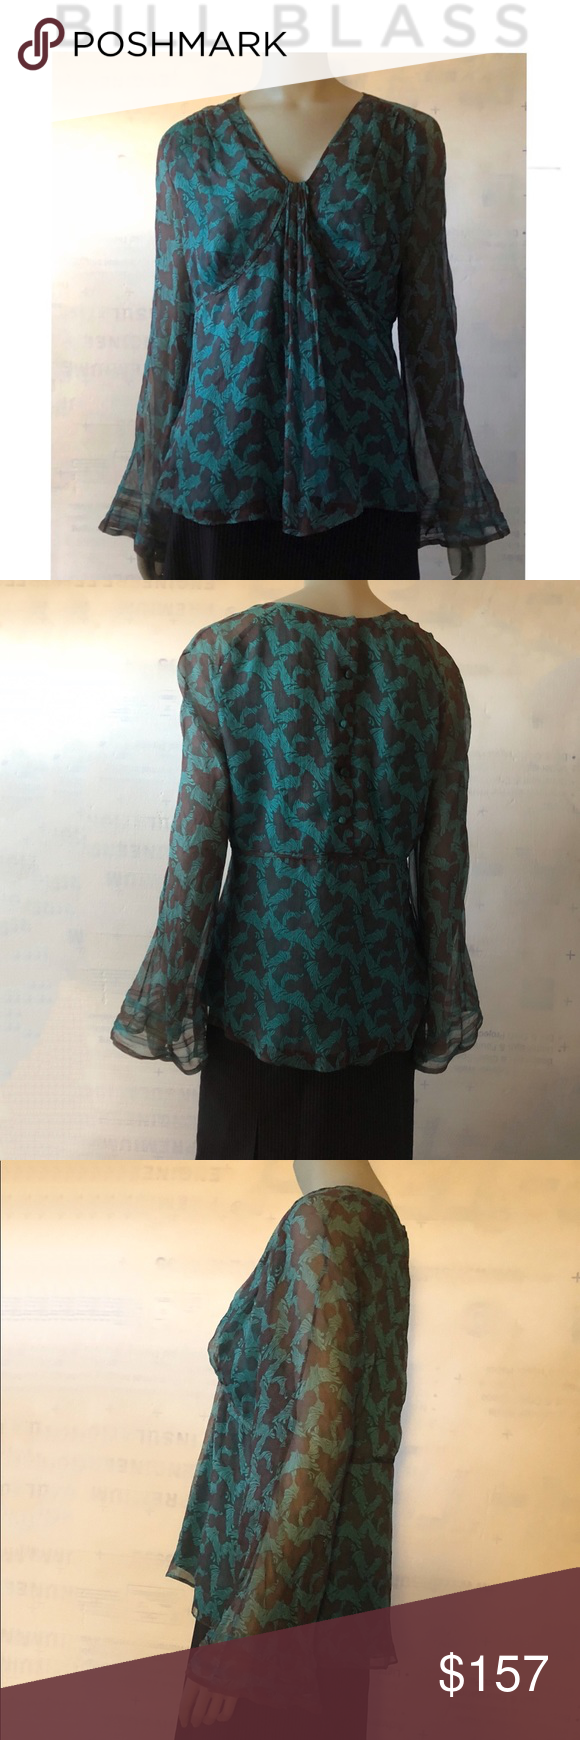 Bill Blass New York Chris Benz Flutter Top Blouse